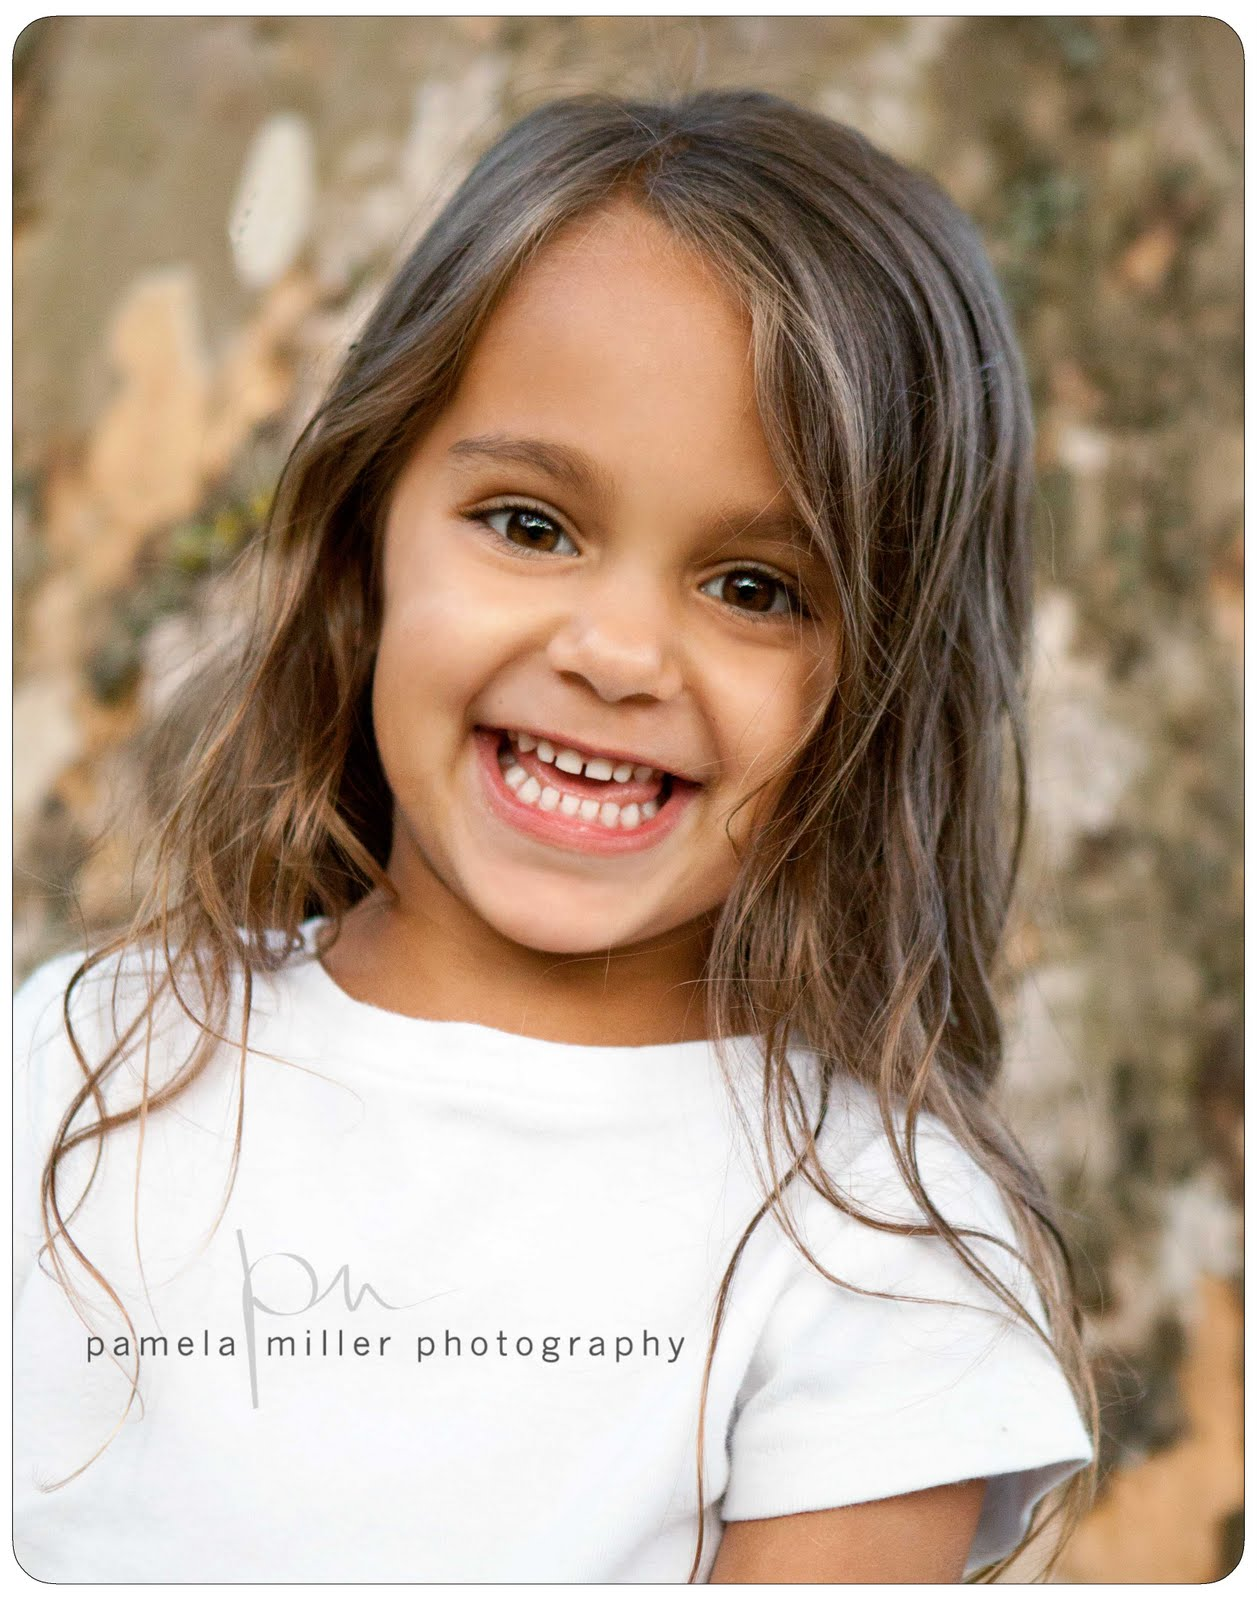 Four Year Two Year Community: Pamela Miller Photography: 4 Year Old Twin Cuties